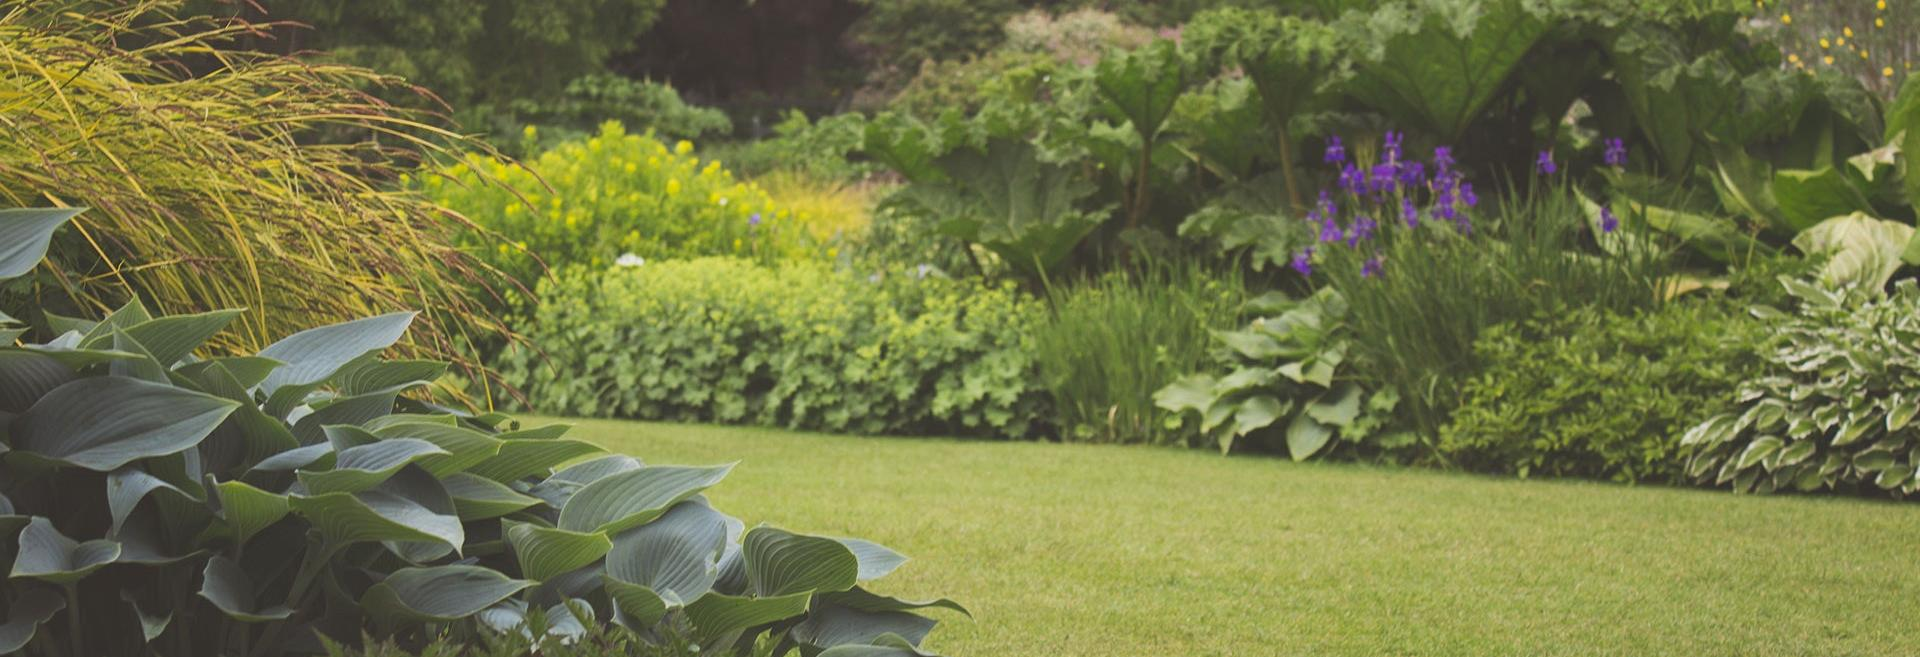 eastern grounds landscaping, lawn & landscape specialists